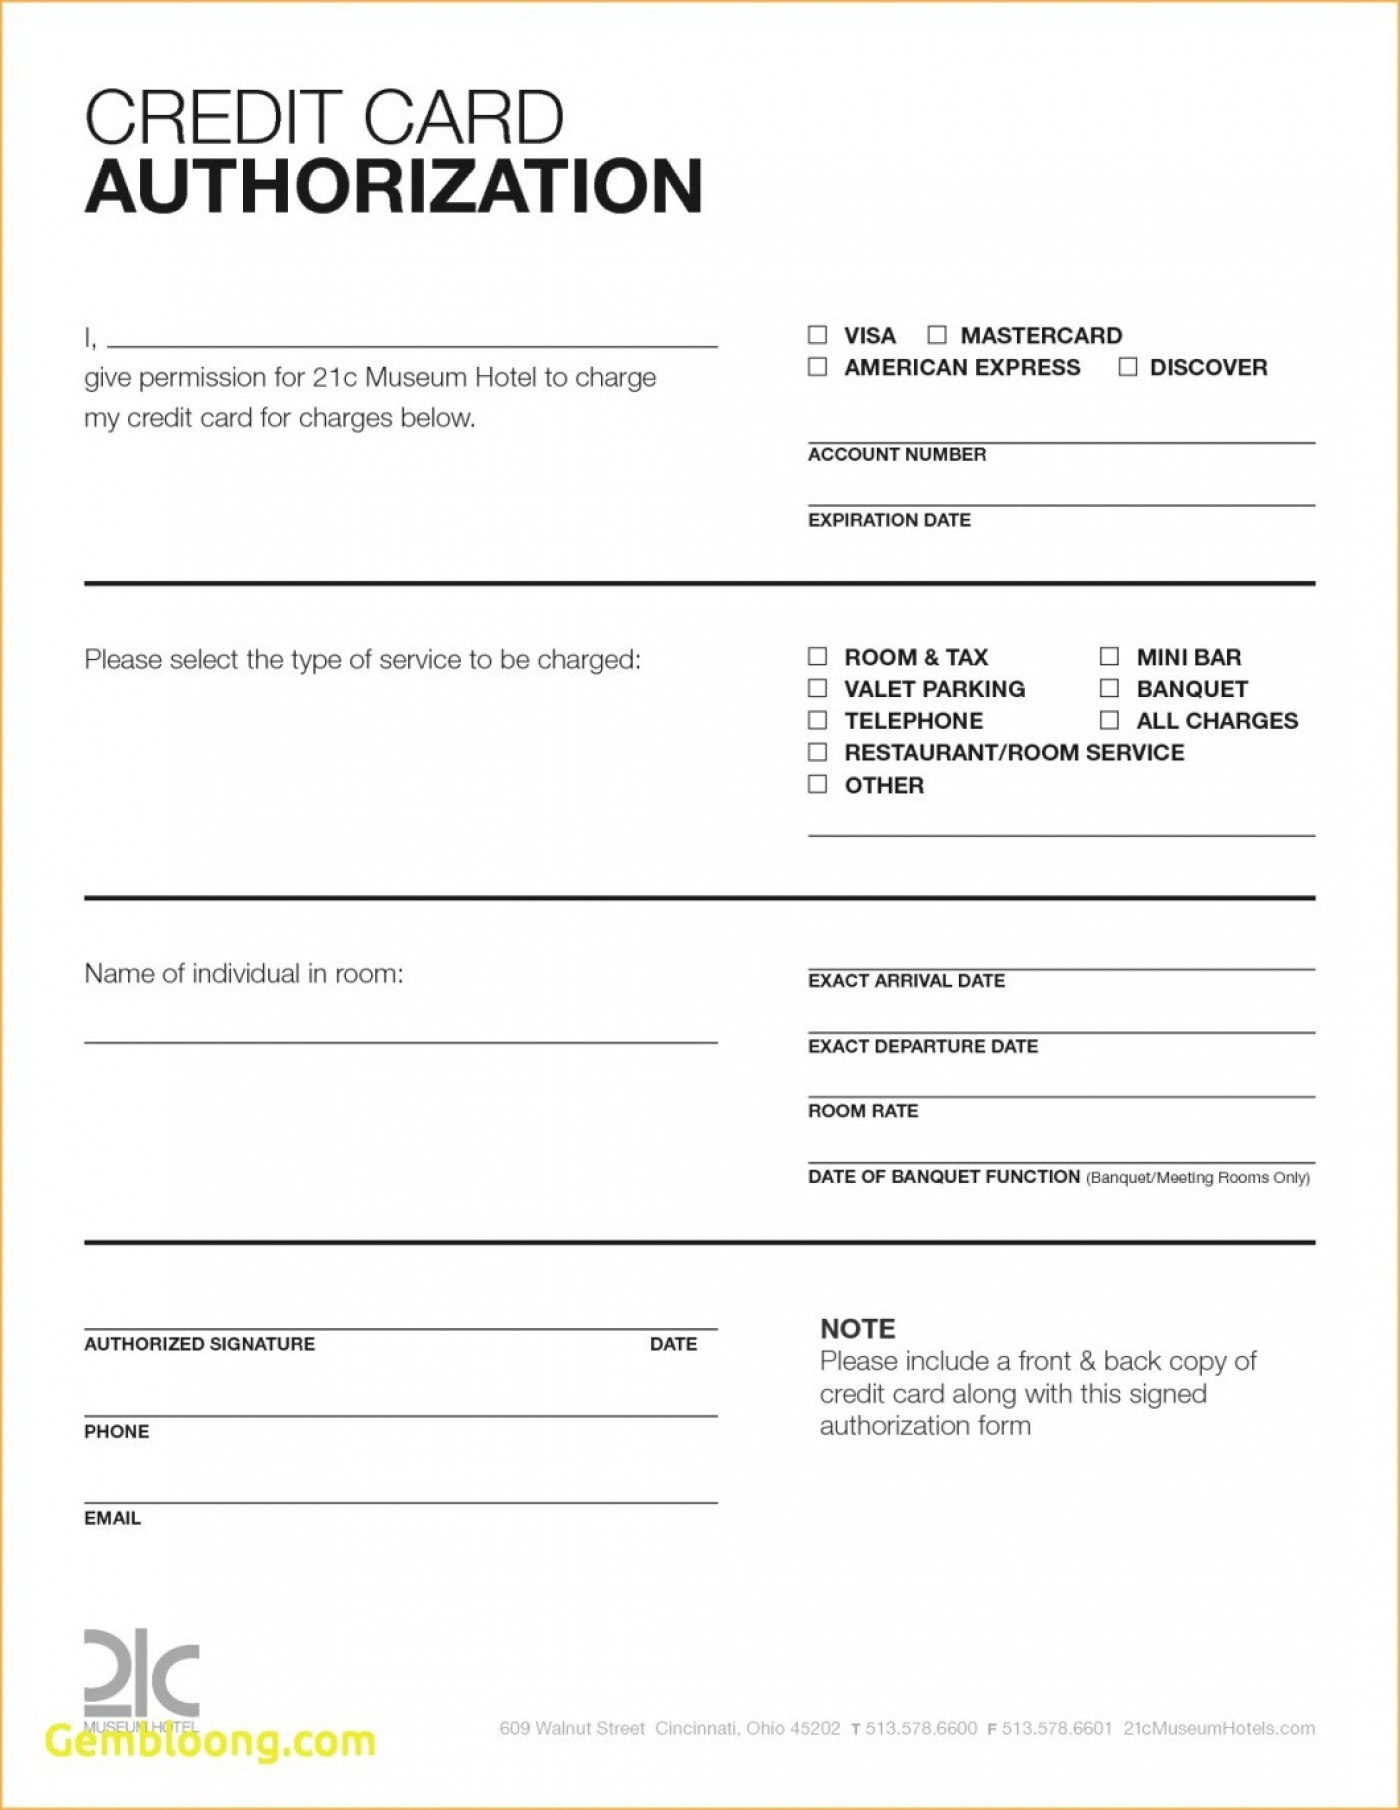 Credit Card Authorization Form Template Word Free Excel Cardjdi With Credit Card Authorization Form Template Word